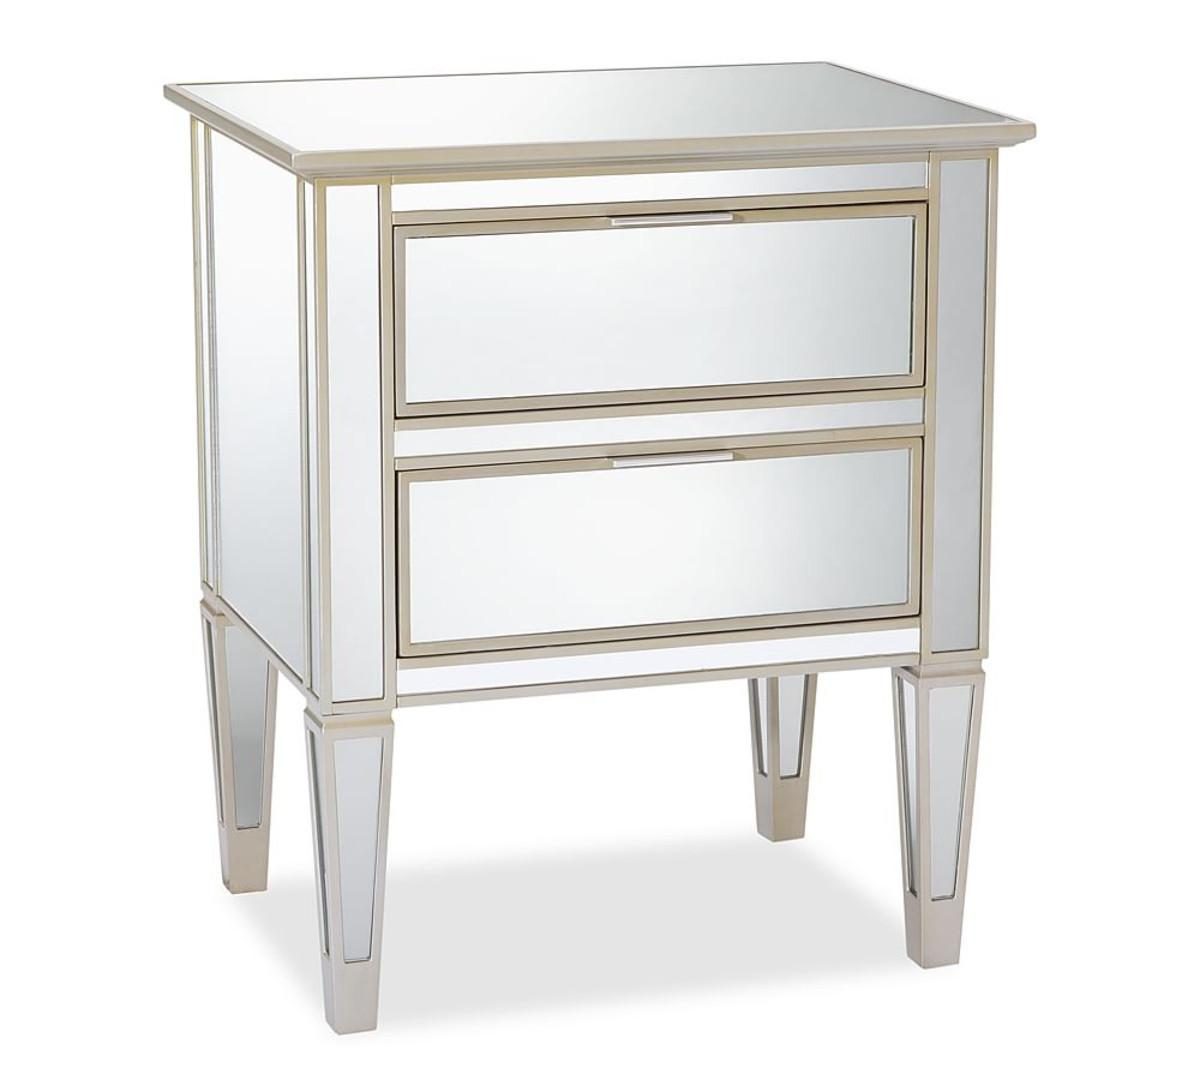 Park Mirrored Drawer Bedside Table Pottery Barn